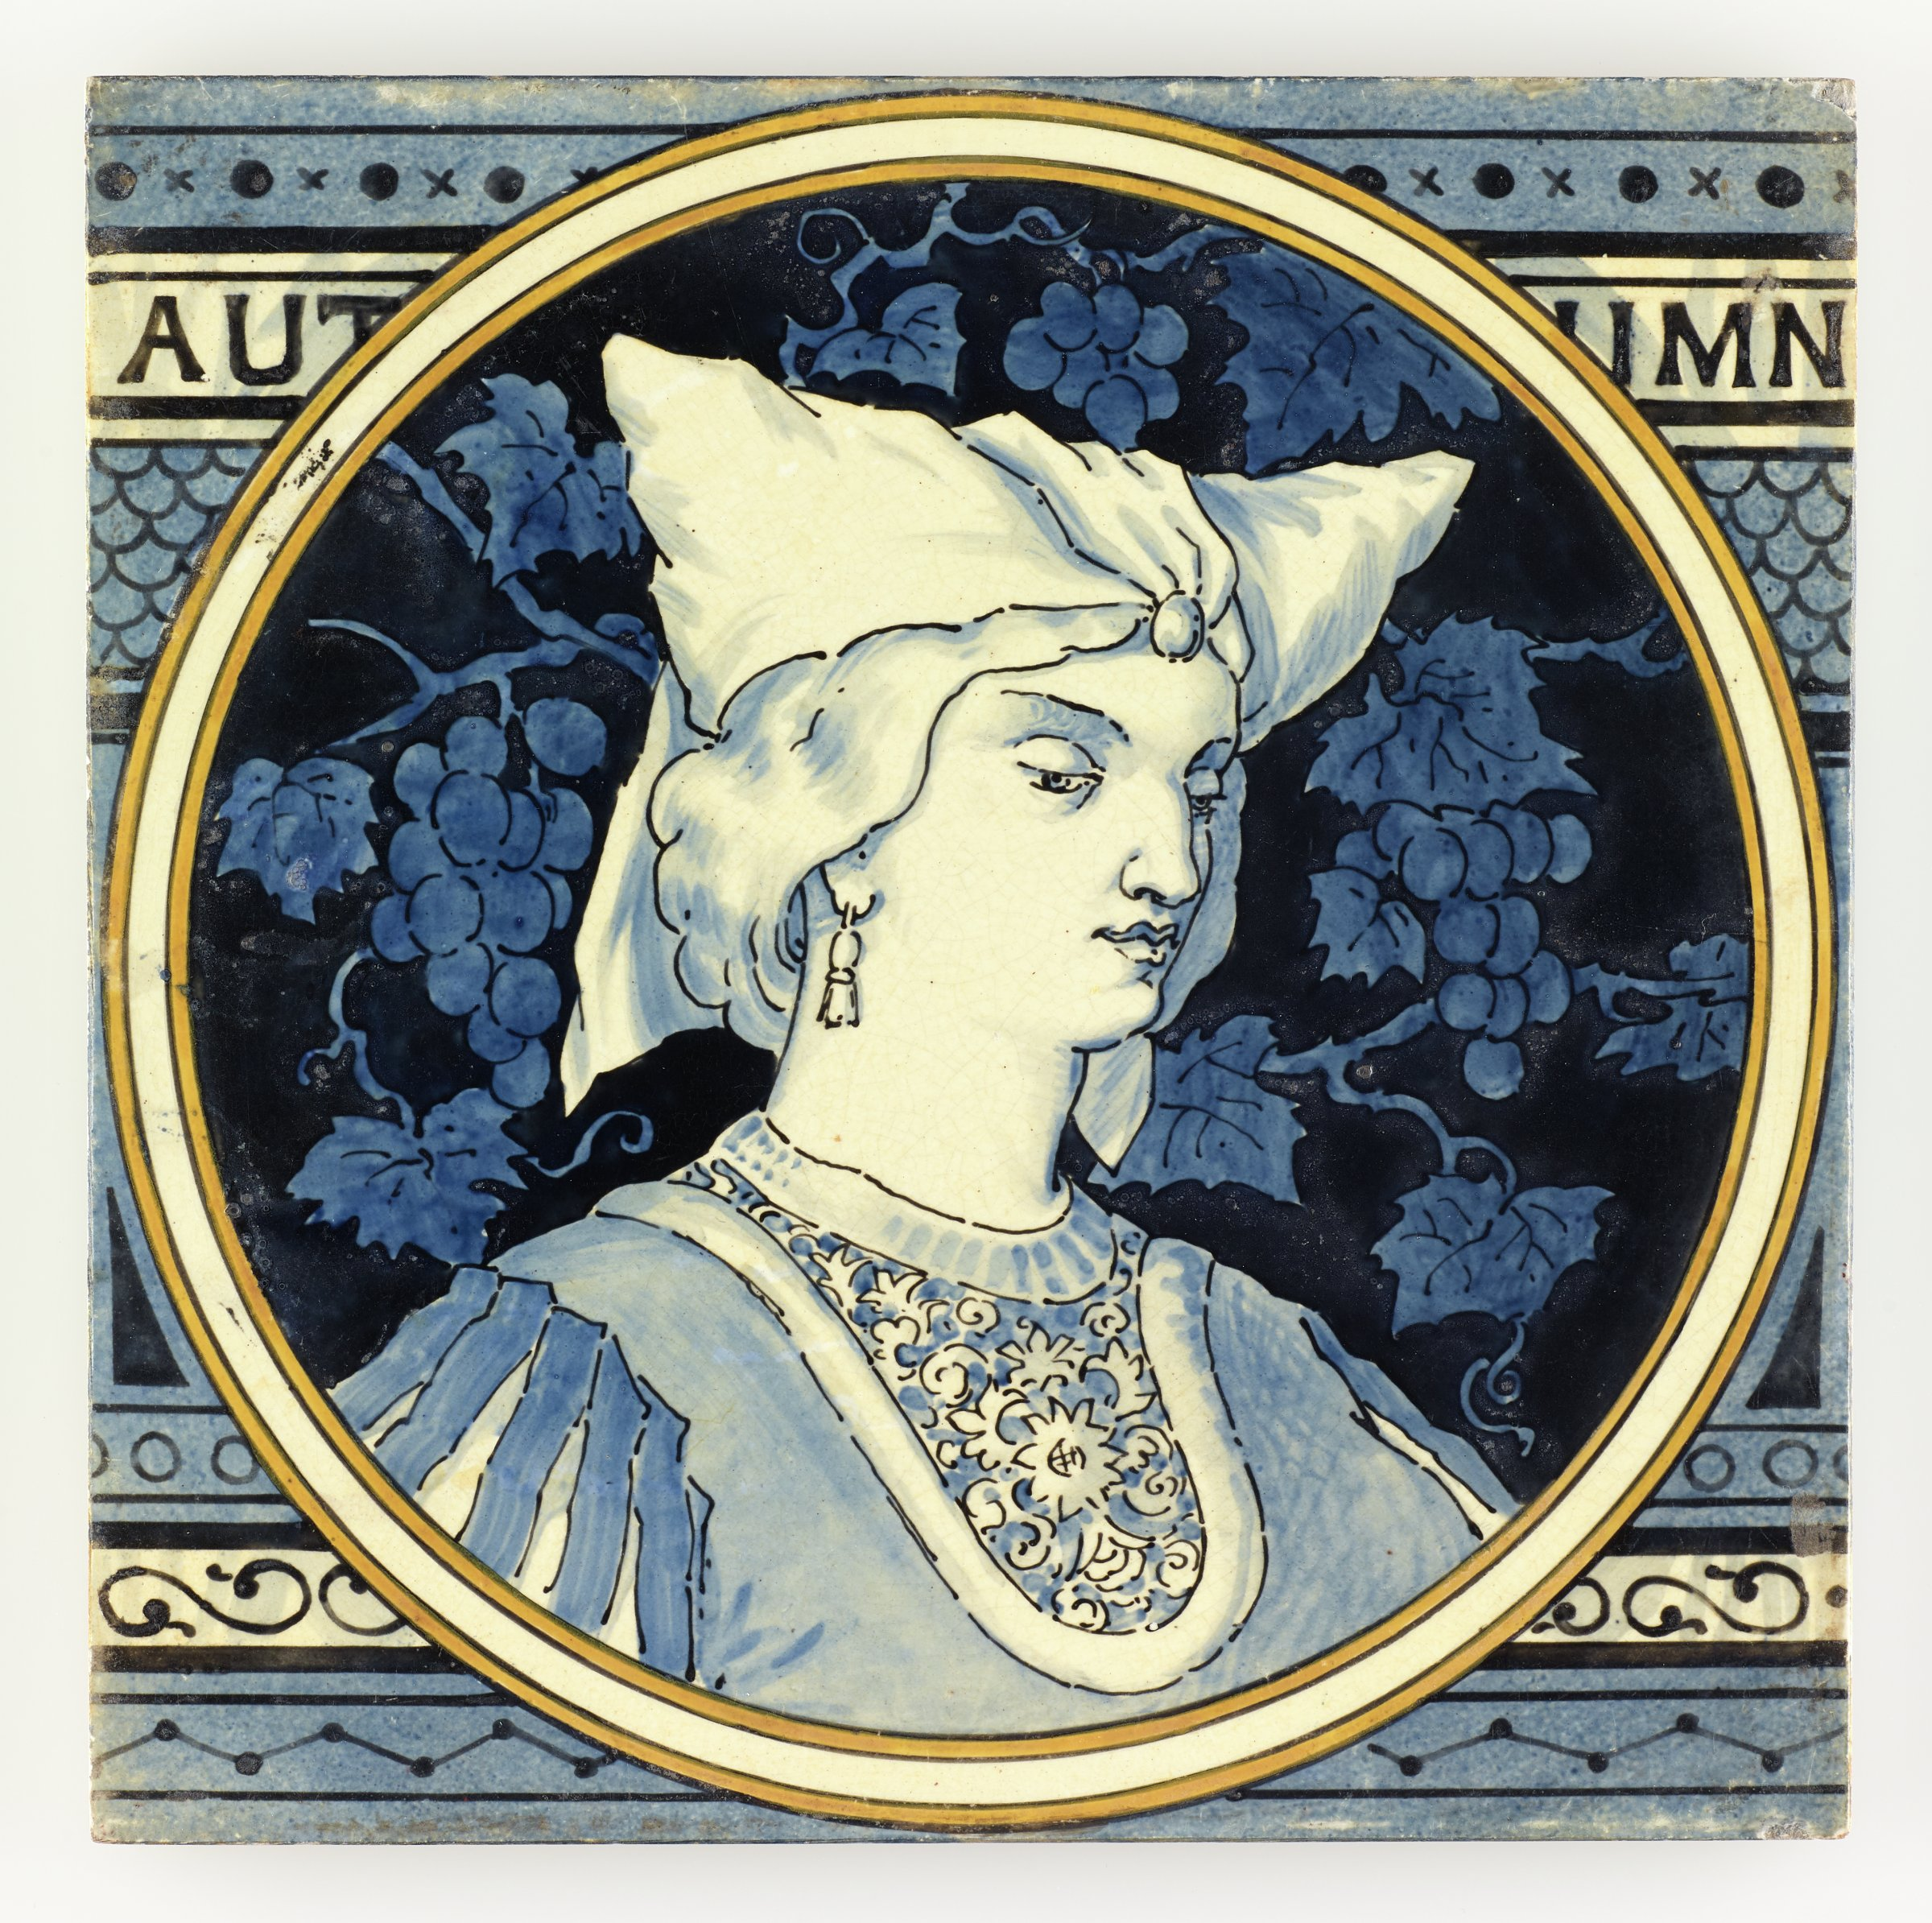 Large, square earthenware tile partially printed and hand-painted with a circular reserve outlined by a white band within two yellow bands containing in white with blue highlights the portrait of a woman facing slight right wearing Medieval garb with a pointed headdress and earrings, the ground with a blue on blue design of grape vines with bunches of grapes, the larger ground of the tile contains in various shades of blue a pattern of decorative, horizontal bands with from the top a band of small x's and solid dots; the name of the season AUT UMN; a fish scale pattern; a band of open dots; a band of scrolling motifs; and a band featuring a zigzag design, the reverse with horizontal bars in relief to aid adhesion when setting the tile.